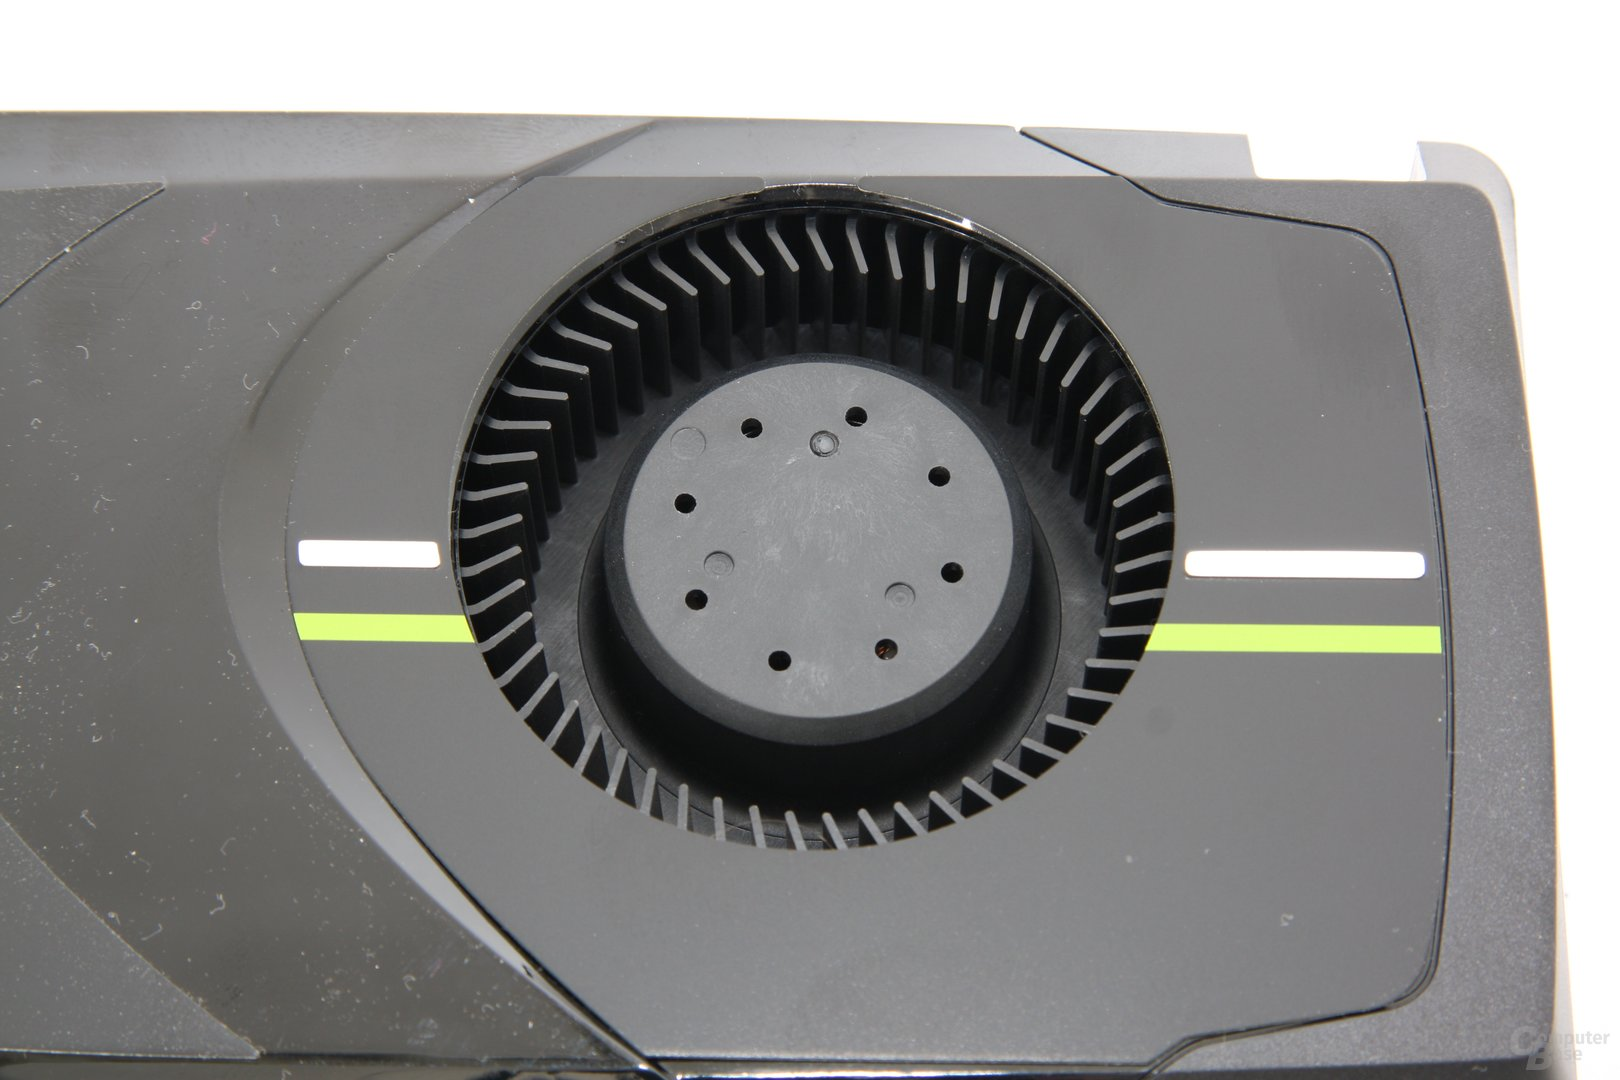 GeForce GTX 680 Lüfter